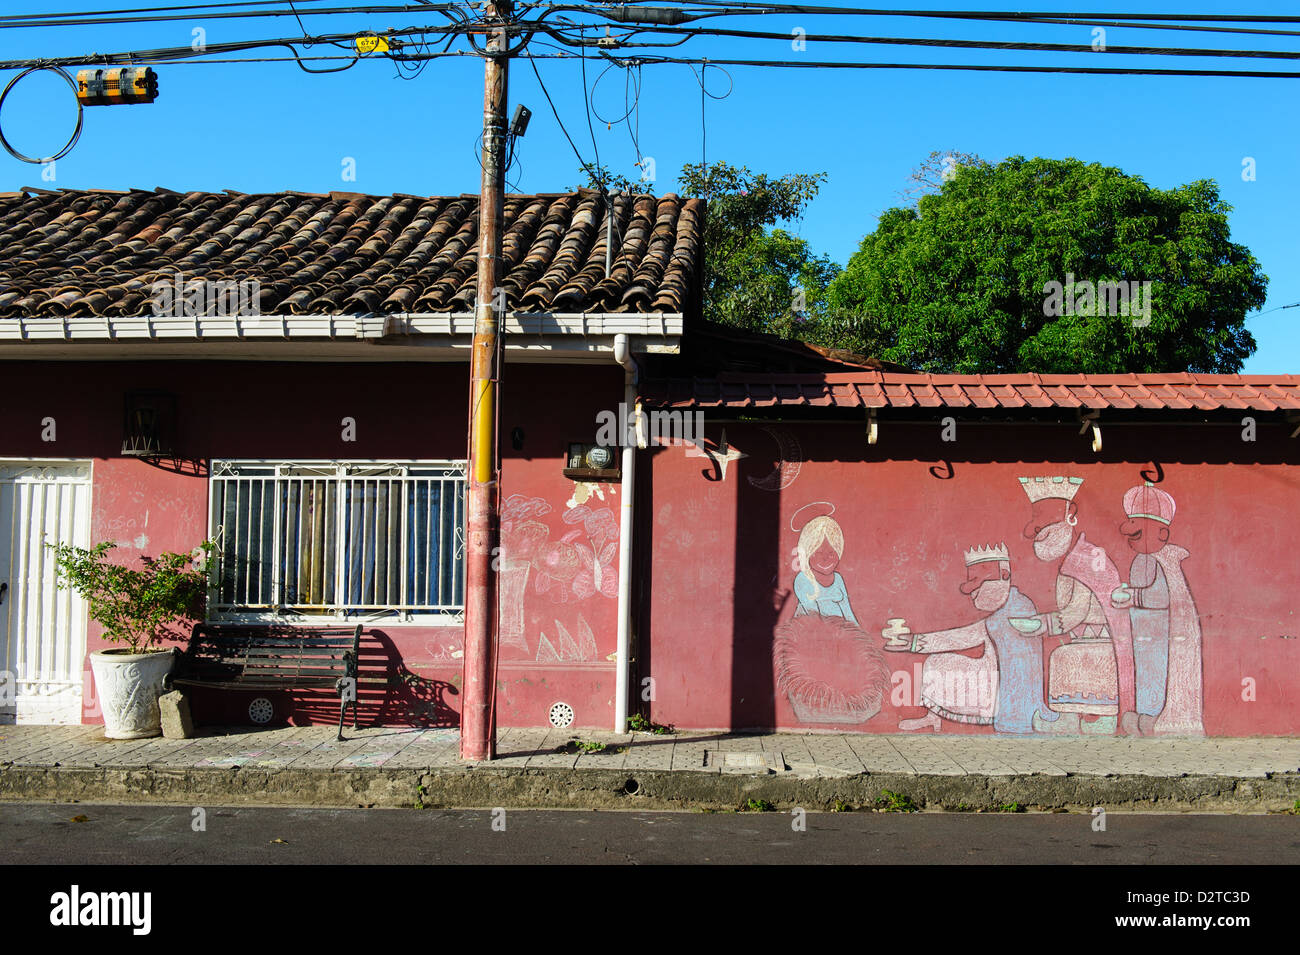 Christmas: Chalk drawing on a red wall in Liberia. Costa Rica - Stock Image